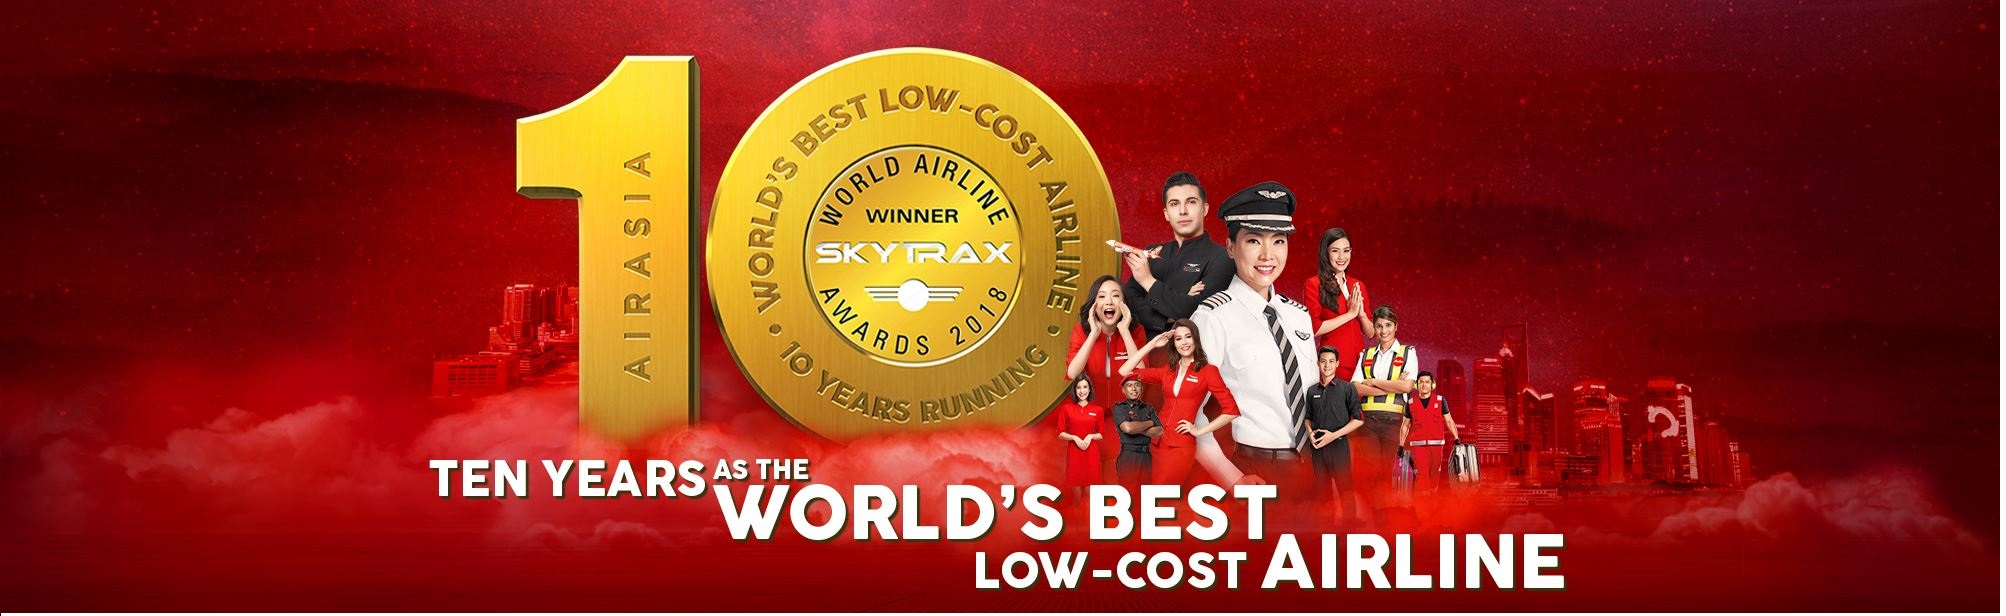 Worlds best low cost airline 10 years running